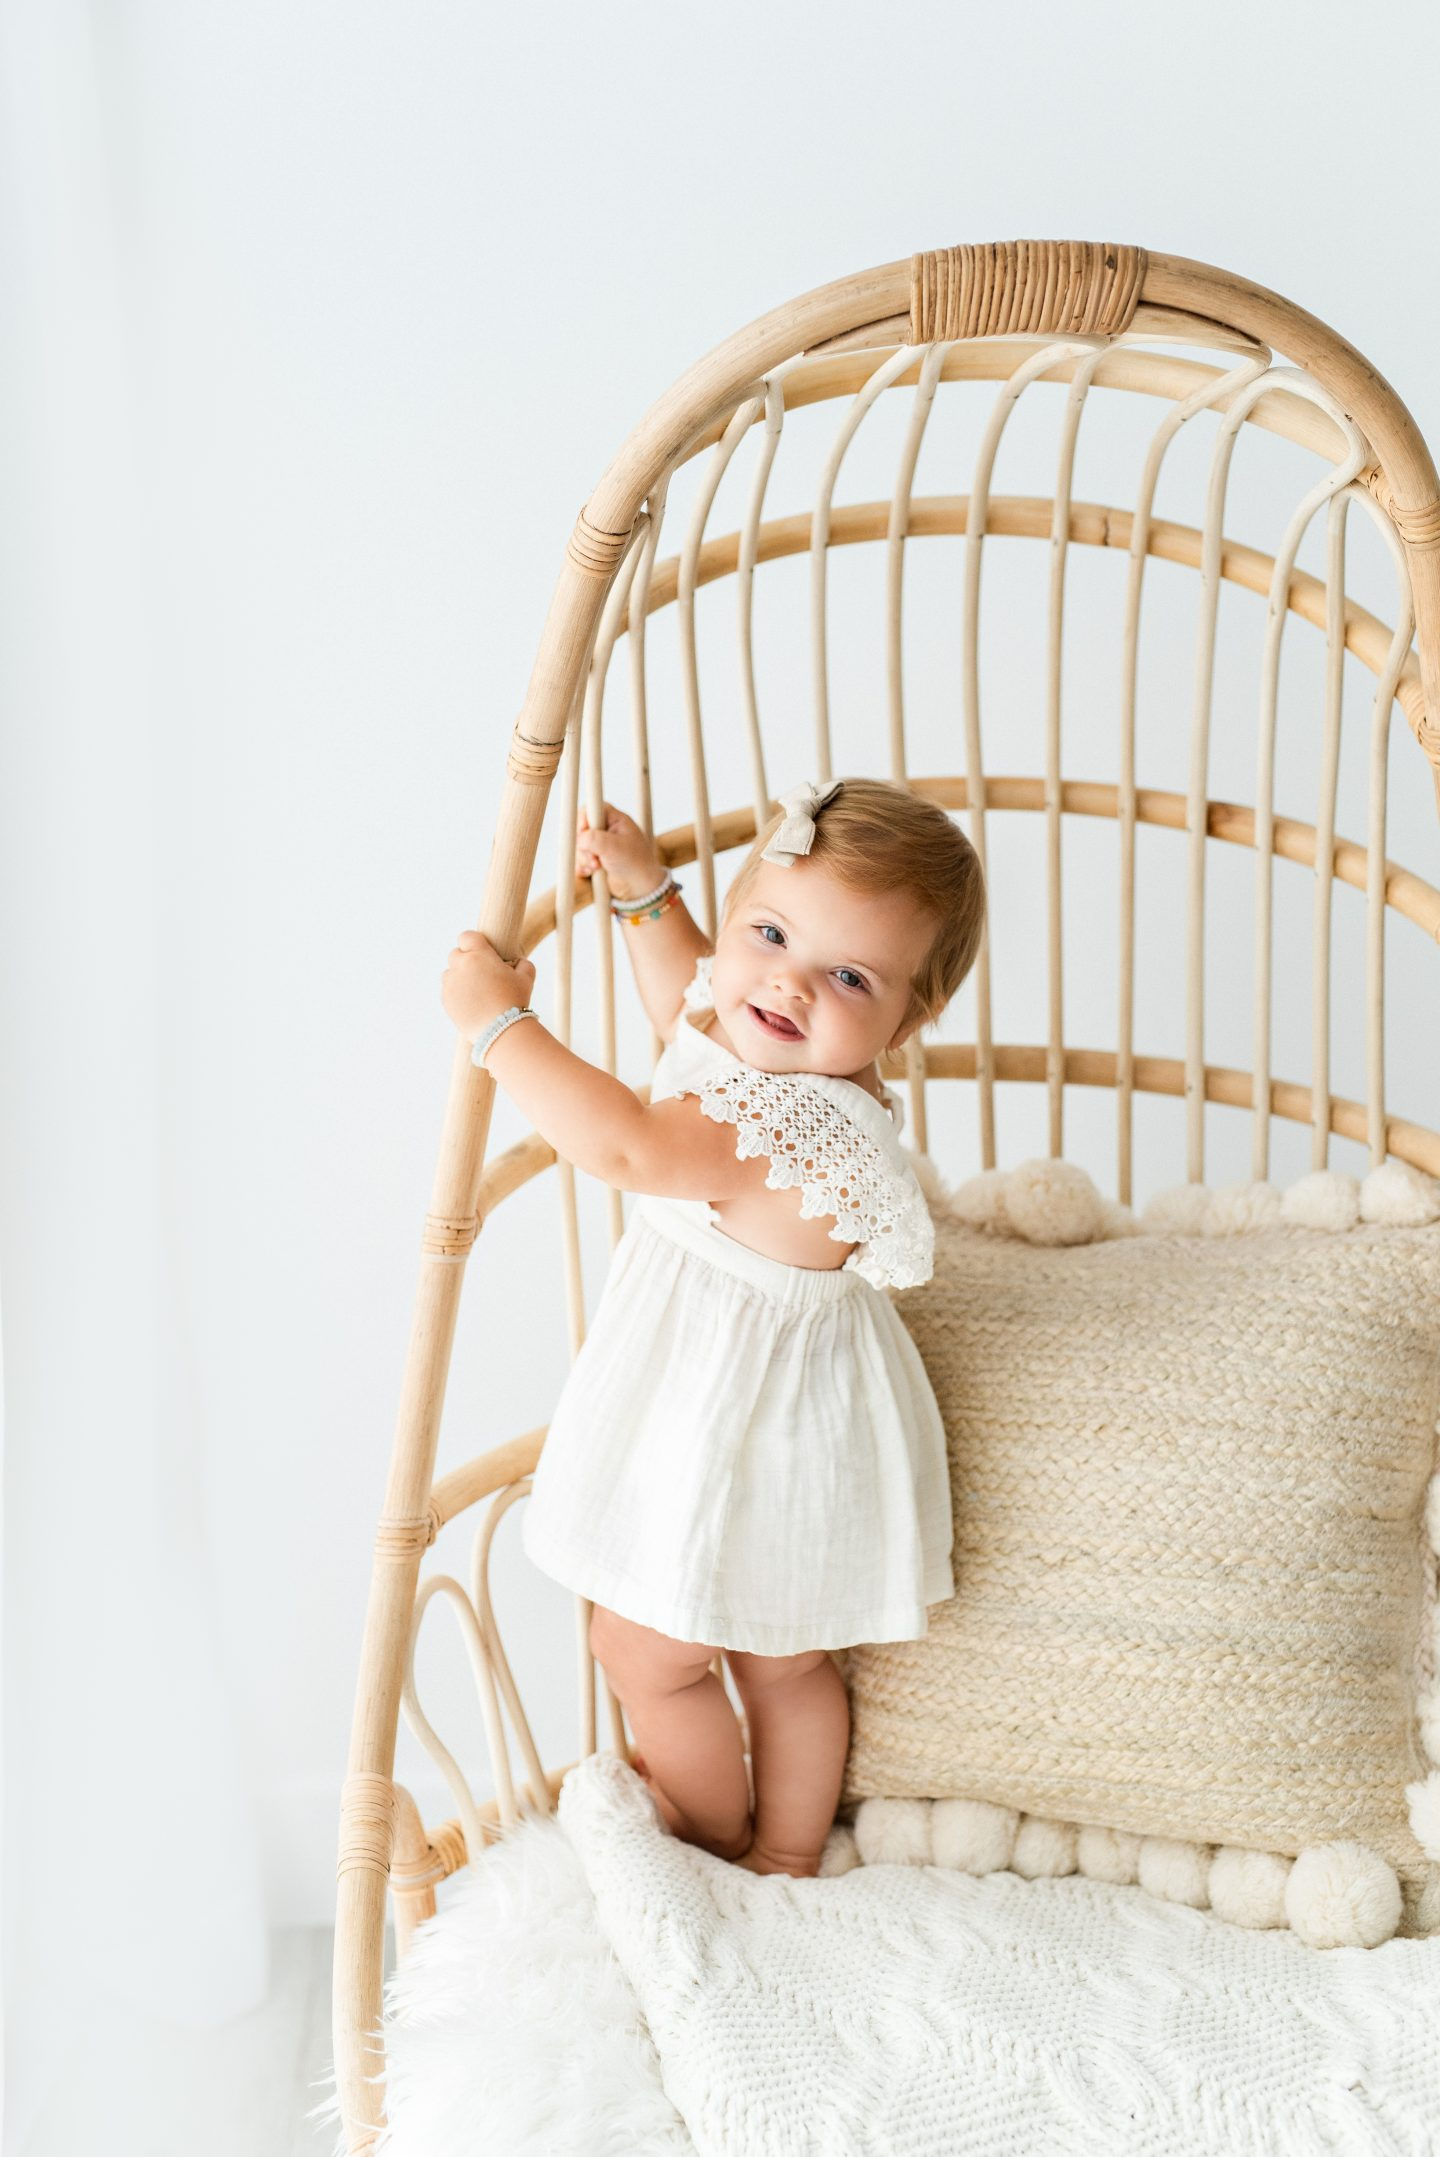 One Year Old Milestones by popular San Diego motherhood blog, Navy Grace: image of a baby girl wearing a white dress and standing in a rattan chair.